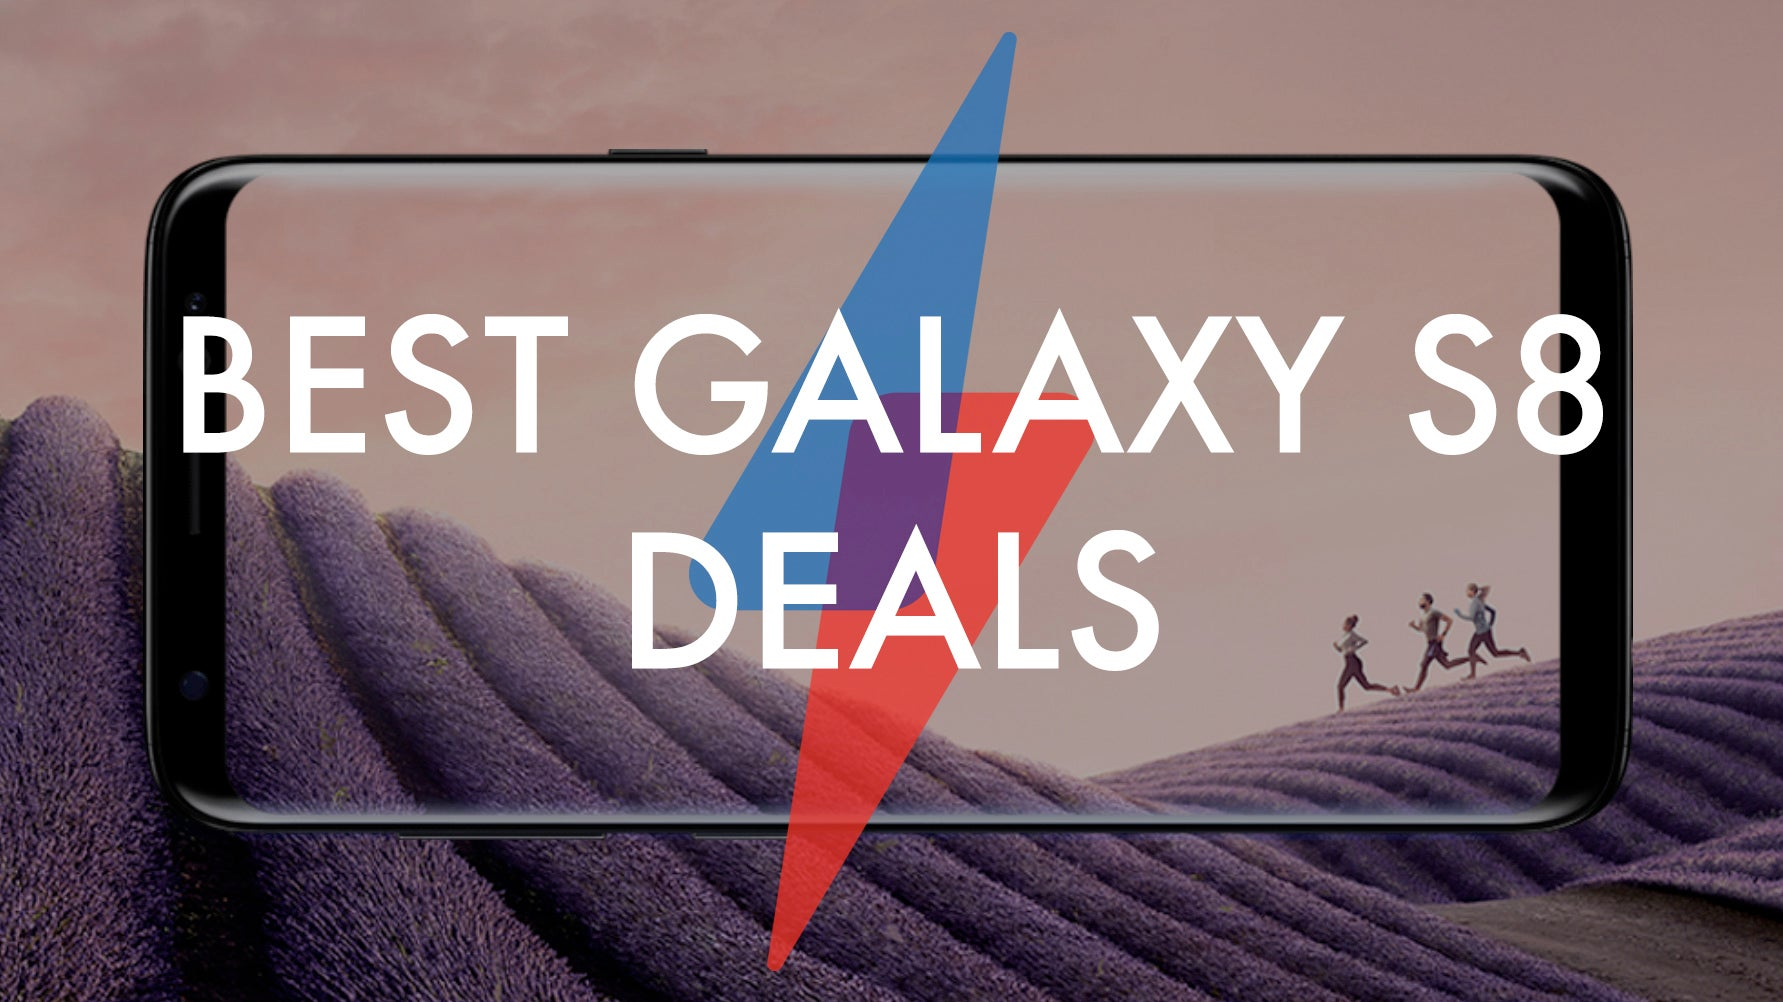 This phenomenal Galaxy 8 deal gets you a free phone with 10GB of data | Trusted Reviews